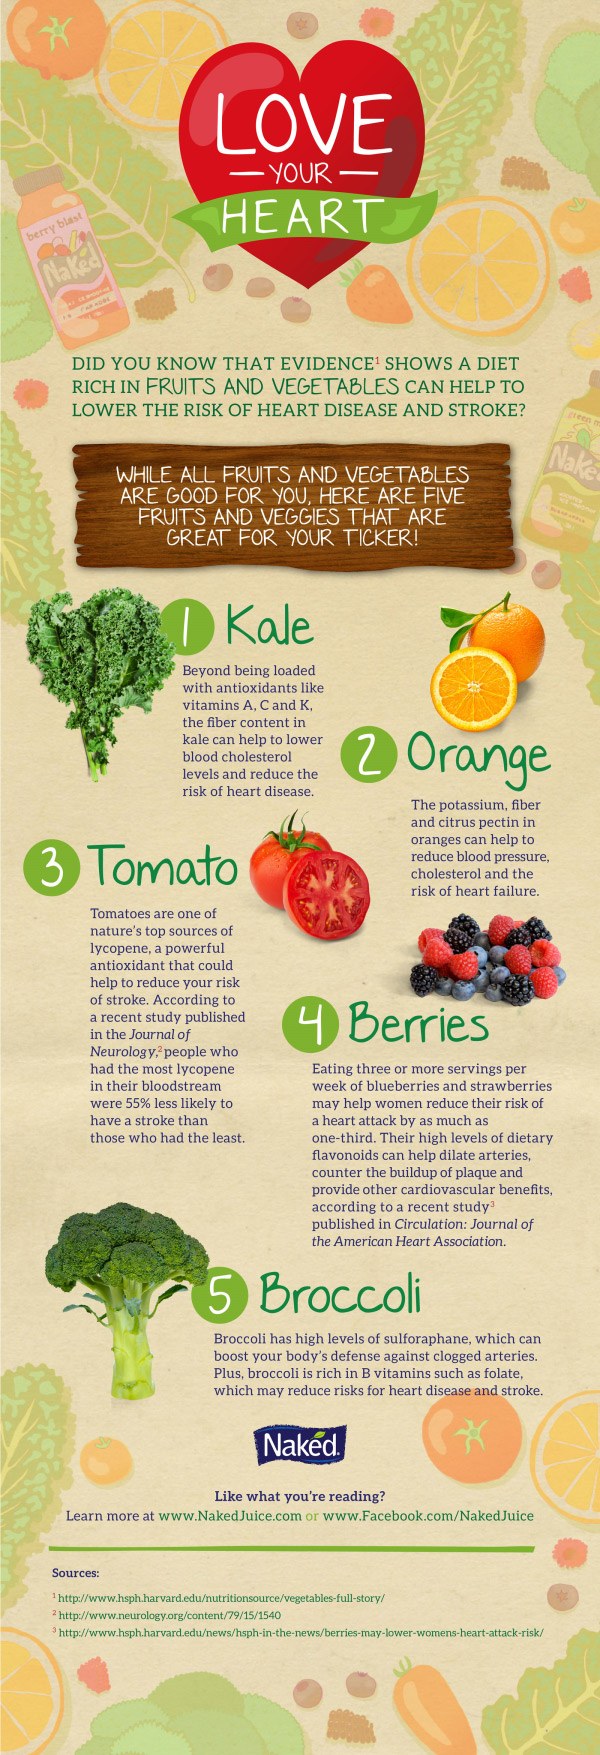 heart-disease-fruits-vegetables-2